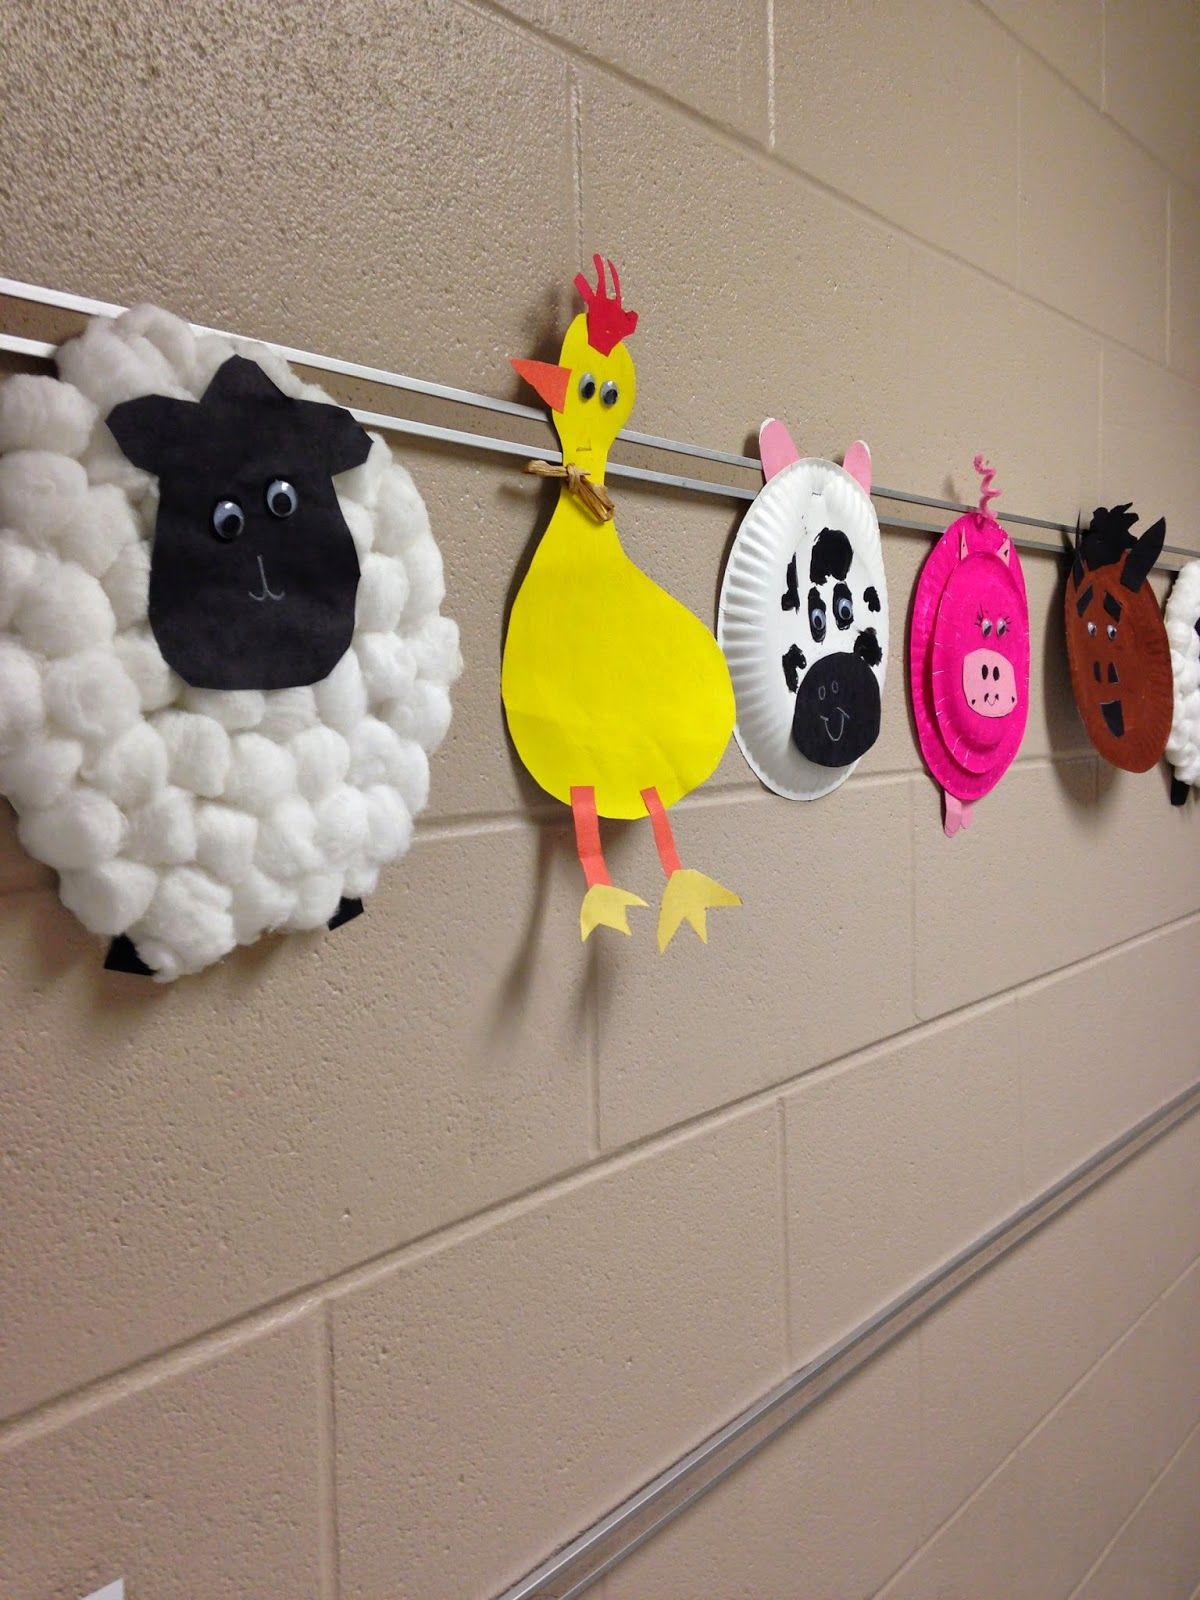 Animals crafts for preschoolers - Simple Farm Animal Crafts